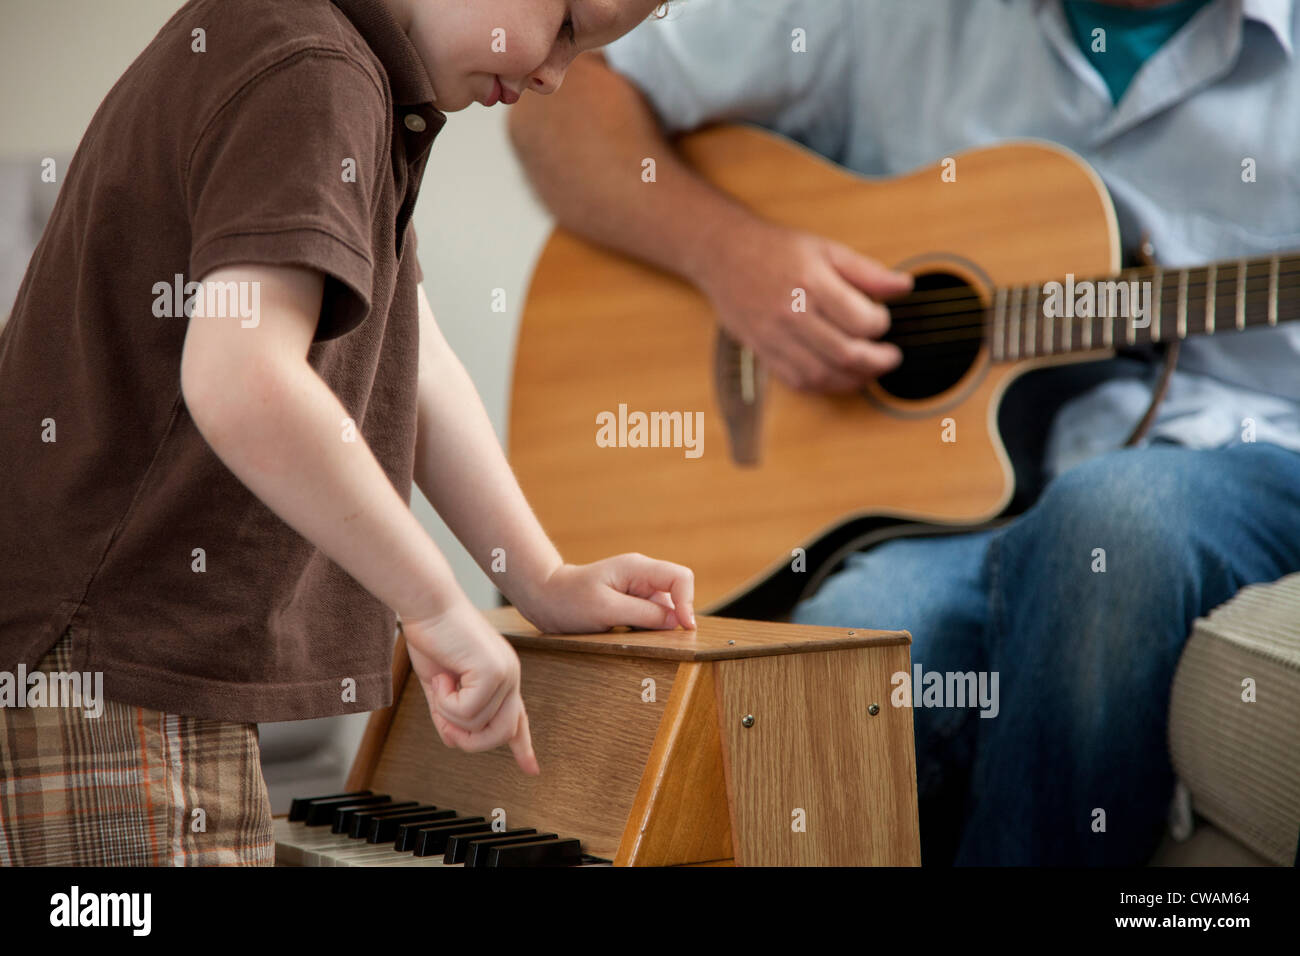 Boy playing little piano as man plays guitar - Stock Image